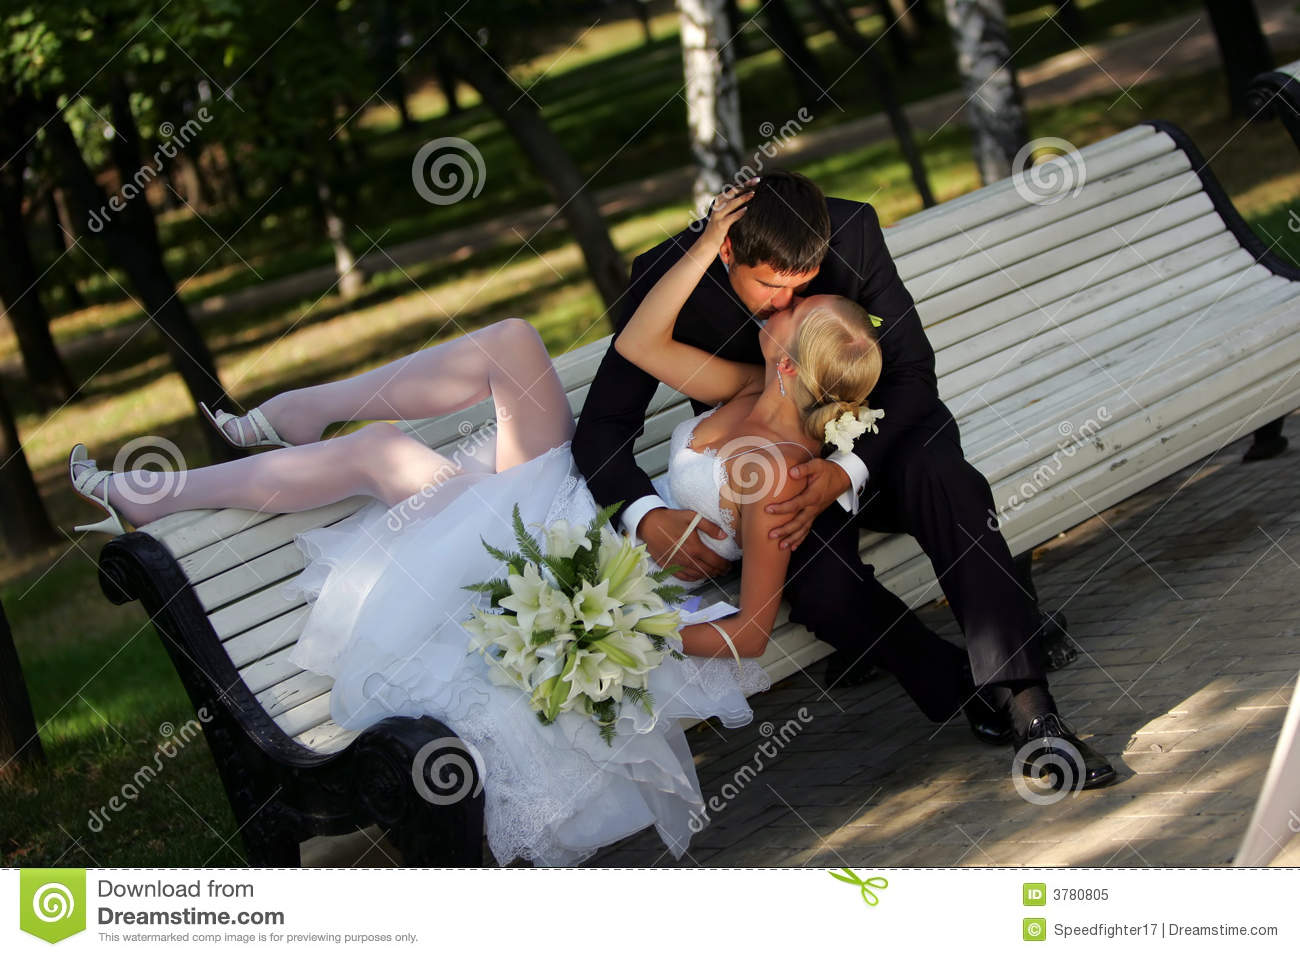 Bride And Groom Kissing On Park Bench Royalty Free Stock Photo - Image ...